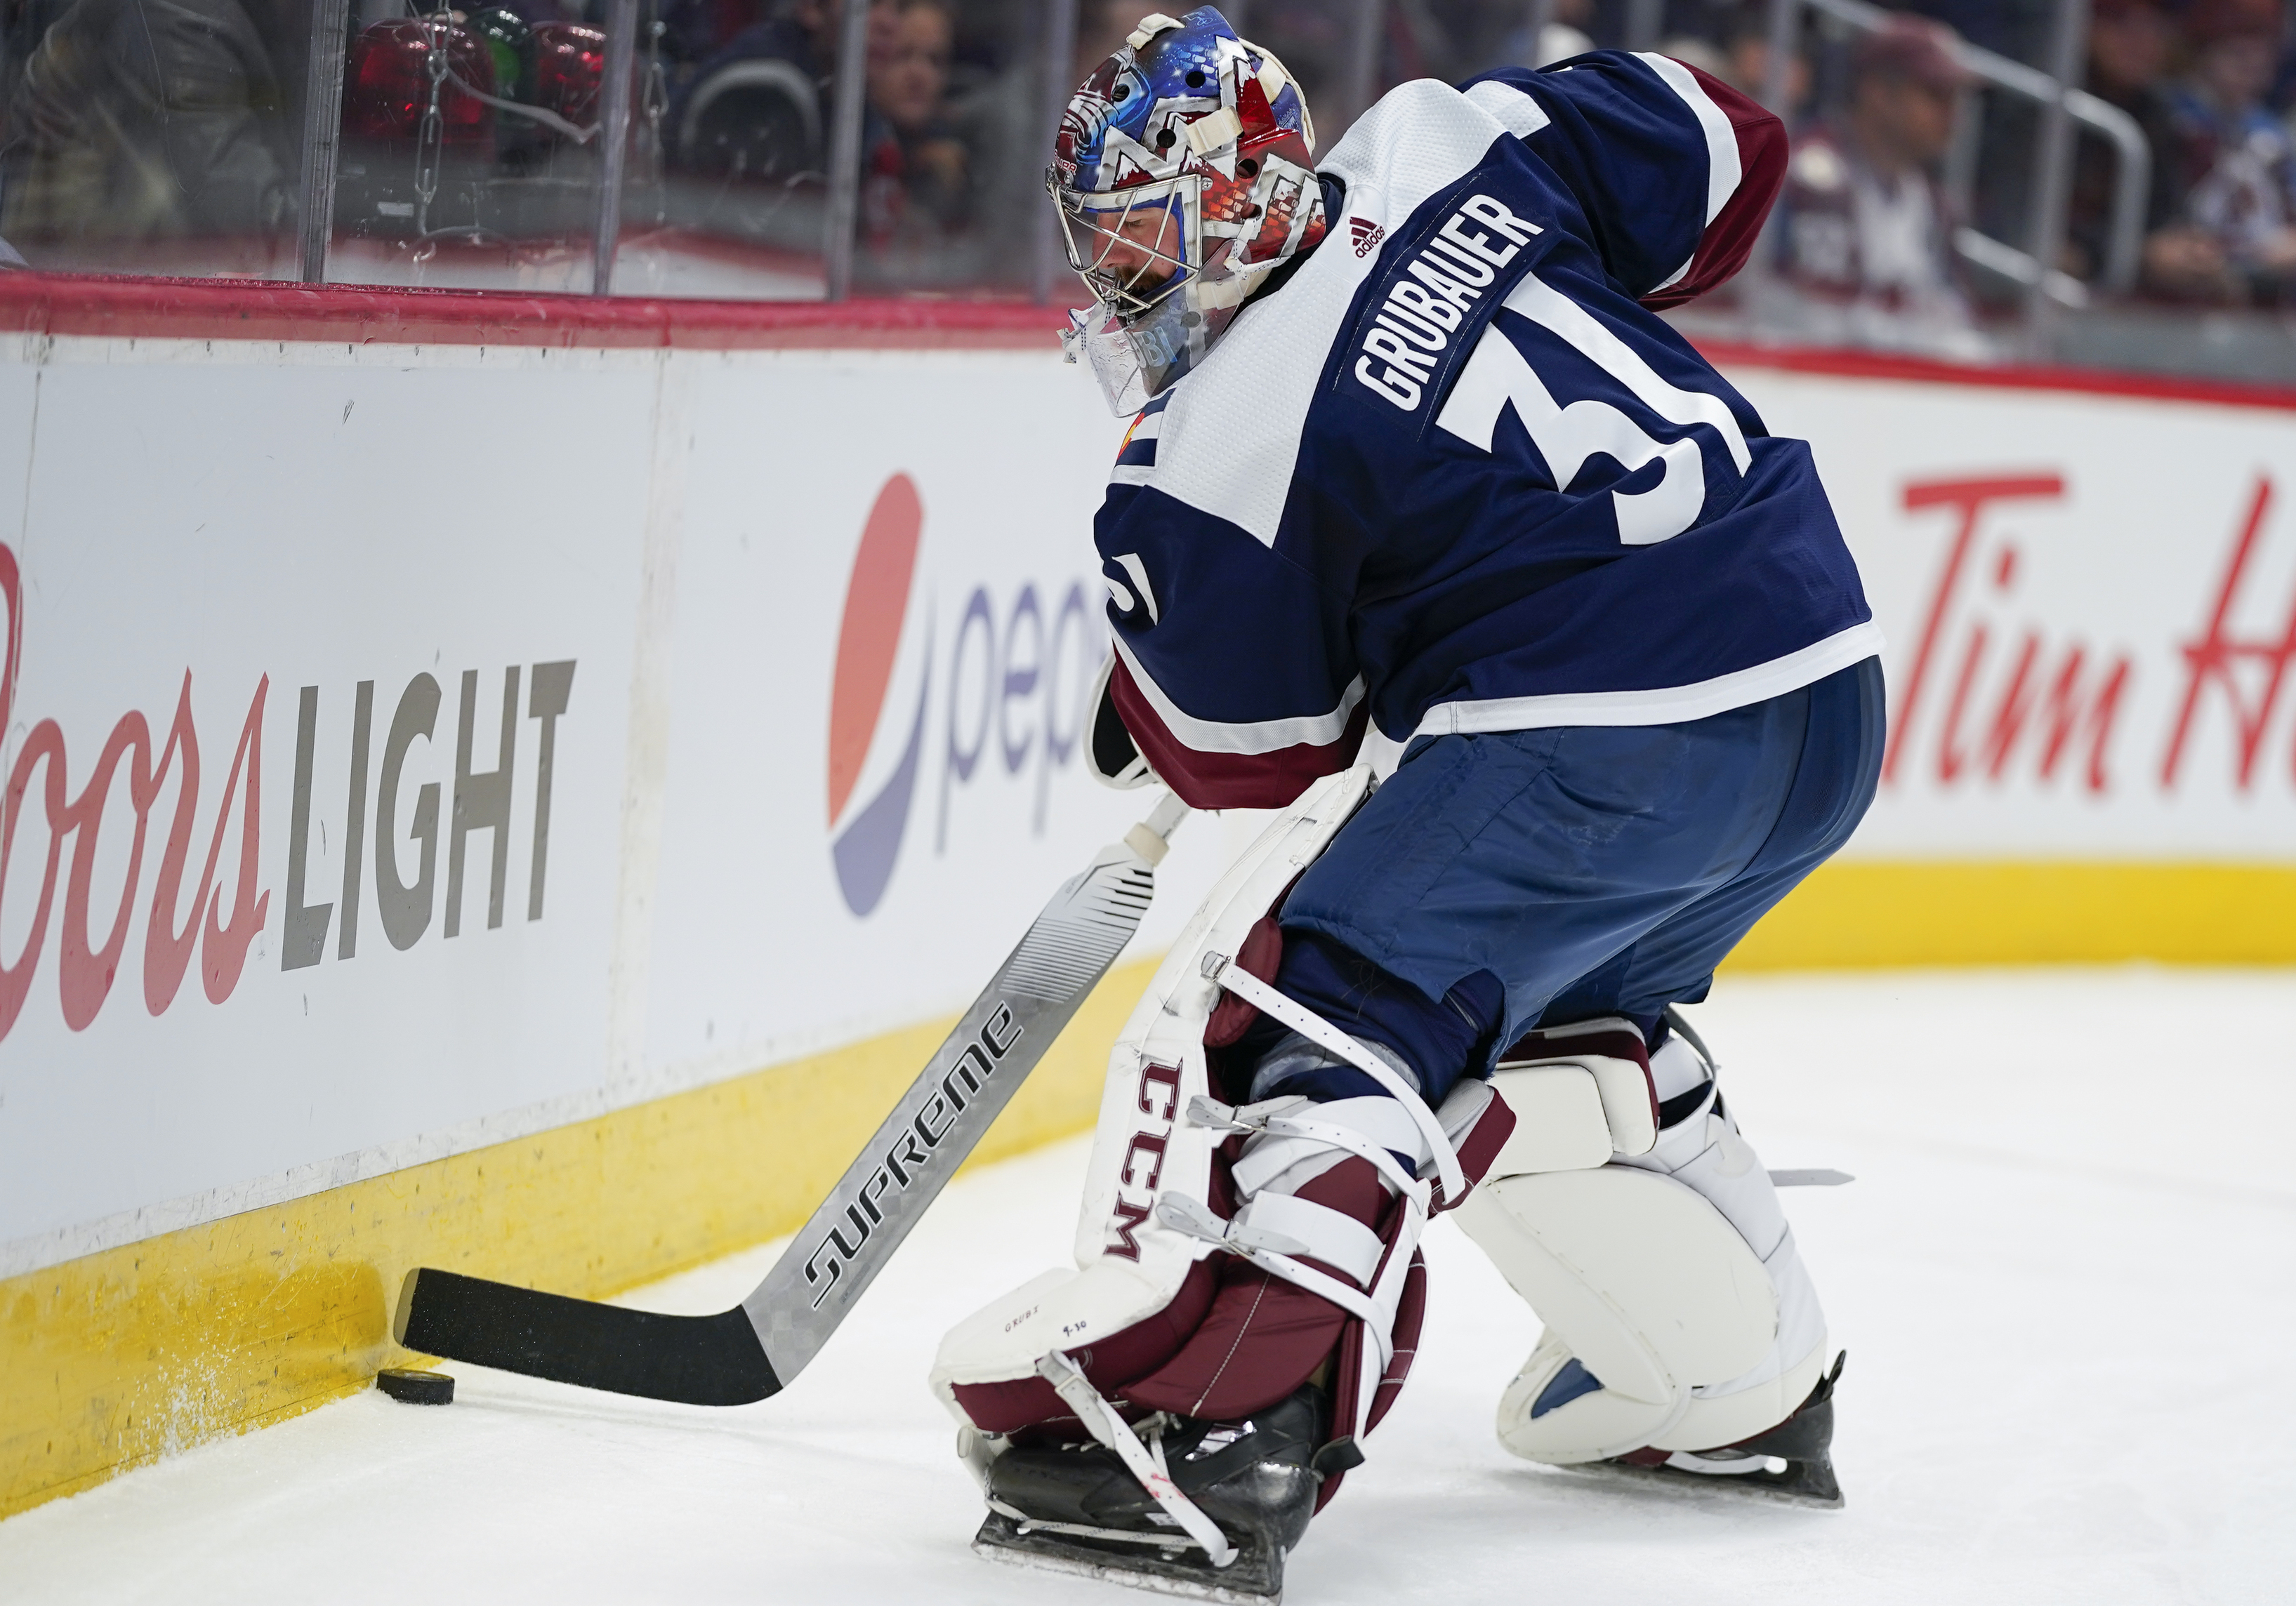 Rantanen returns to lineup, leads Avalanche past Chicago 7-3